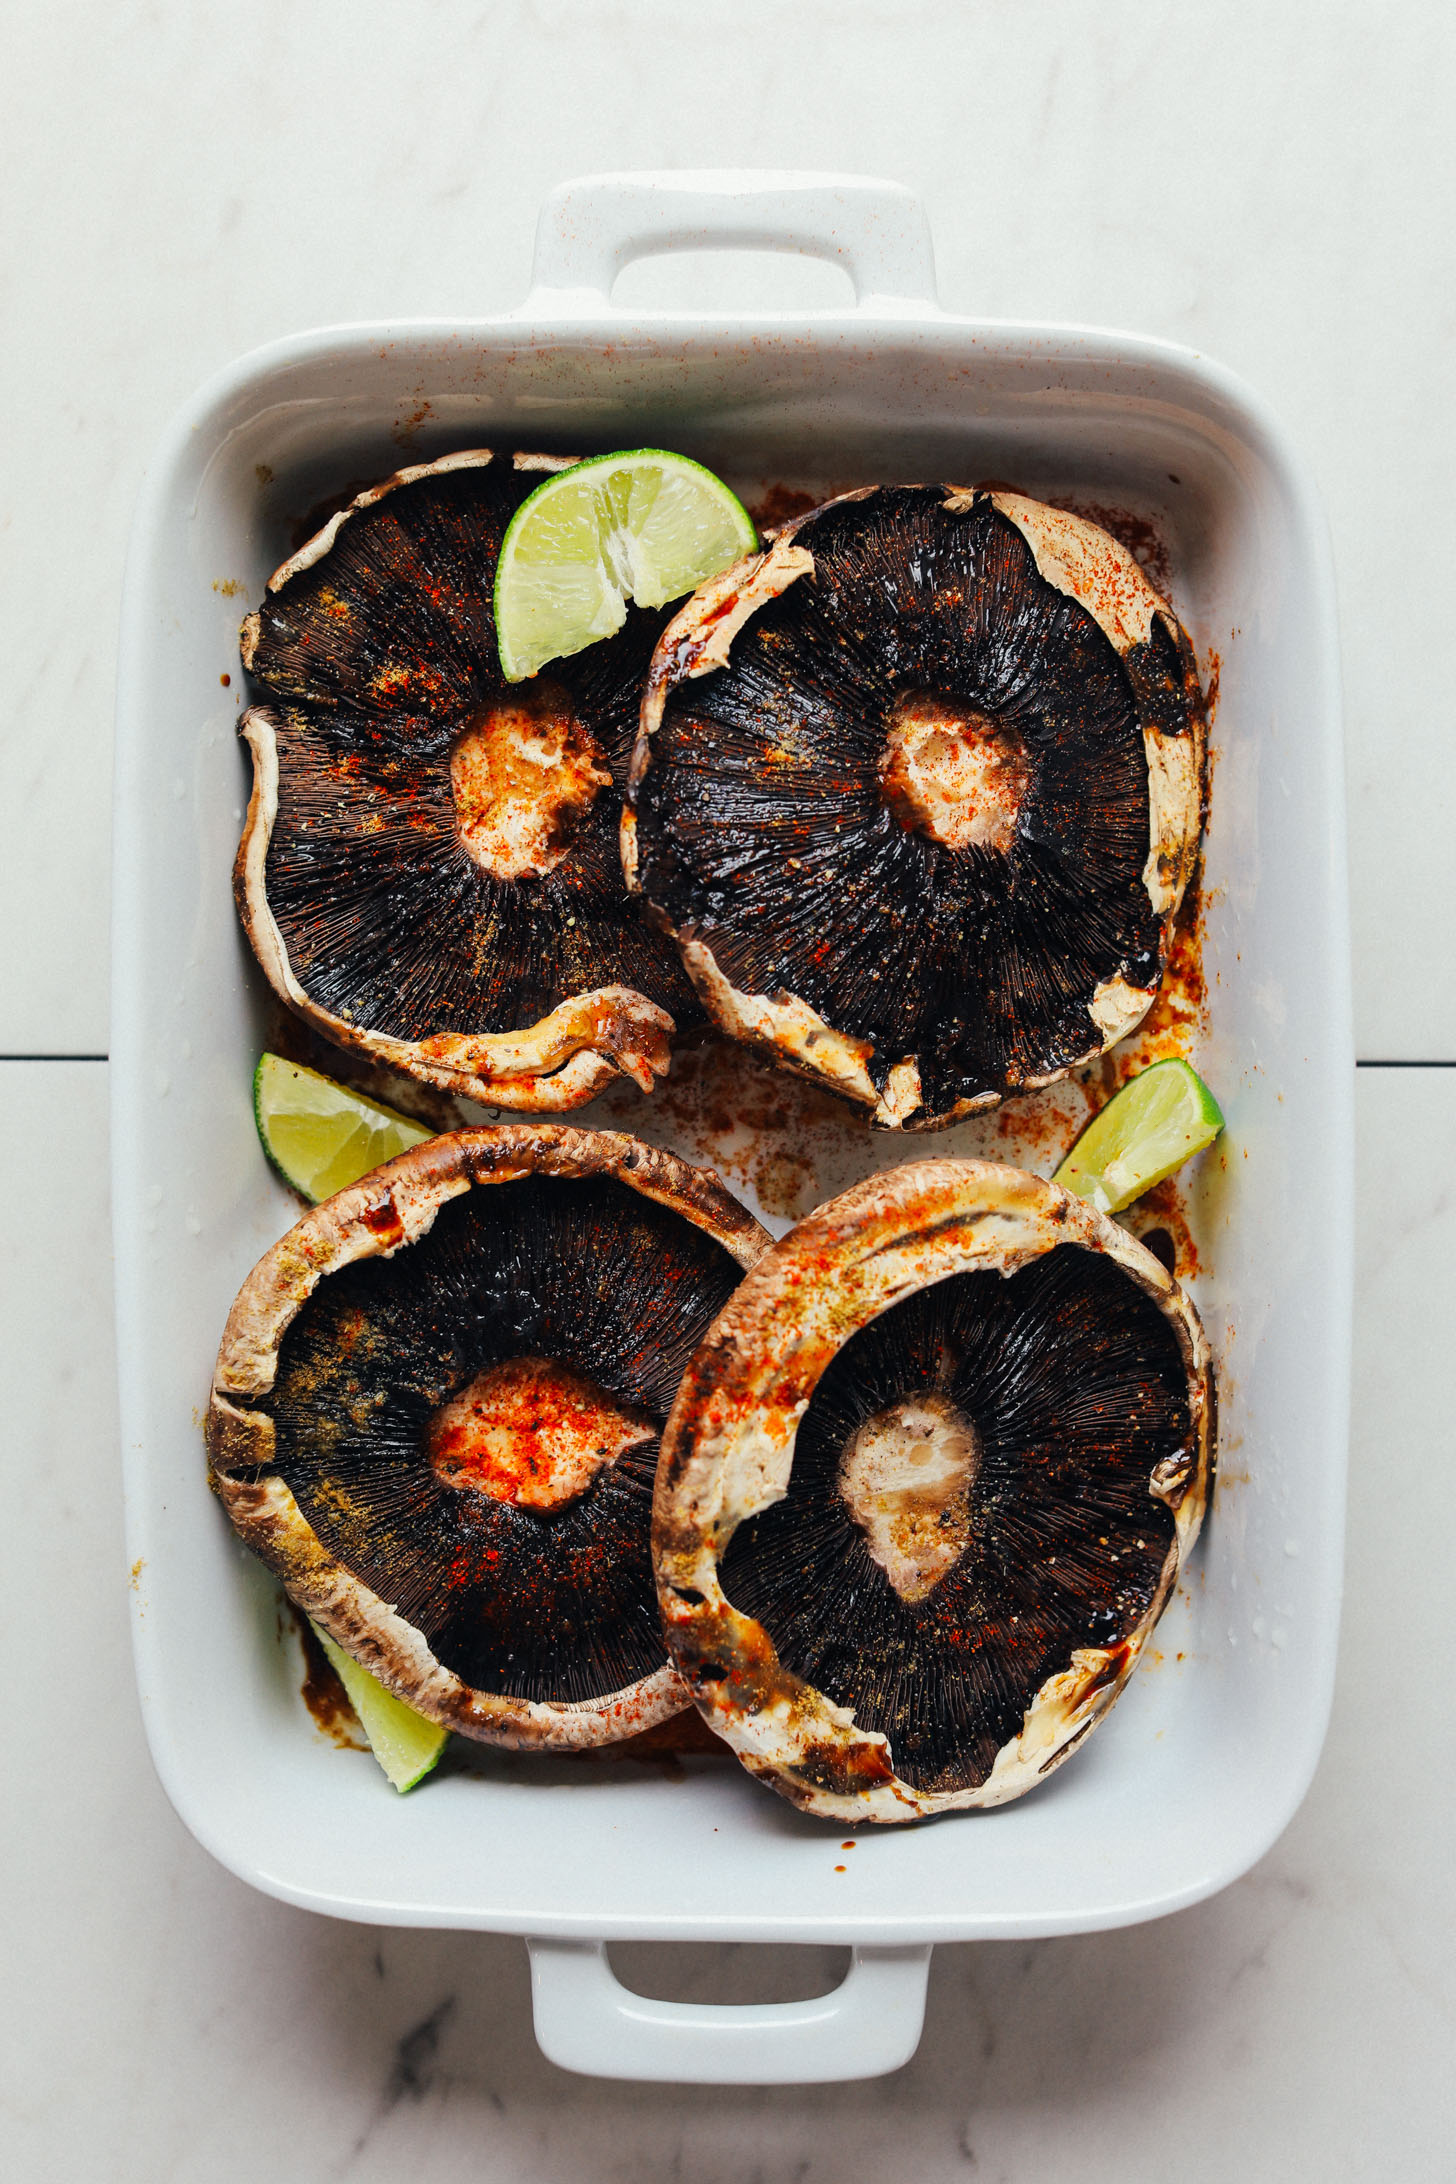 Ceramic baking dish with four portobello mushrooms, spices, and fresh lime wedges